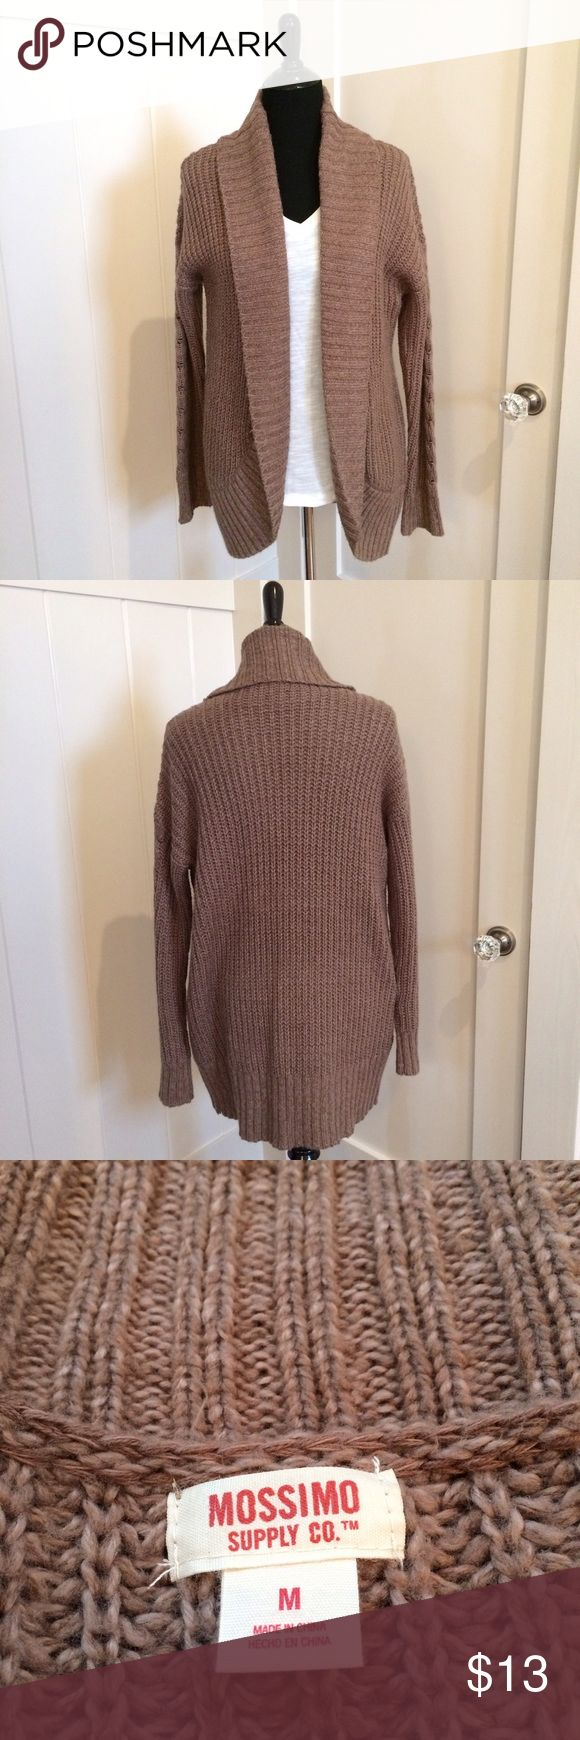 "Mossimo Boyfriend Cardigan Medium NWOT New & never worn boyfriend Cardigan size Medium in pretty mocha chocolate color. Approx 21"" Chest 55% Cotton & 45% acrylic Beautiful new condition. Smoke free home. 🎀 Mossimo Supply Co Sweaters Cardigans"